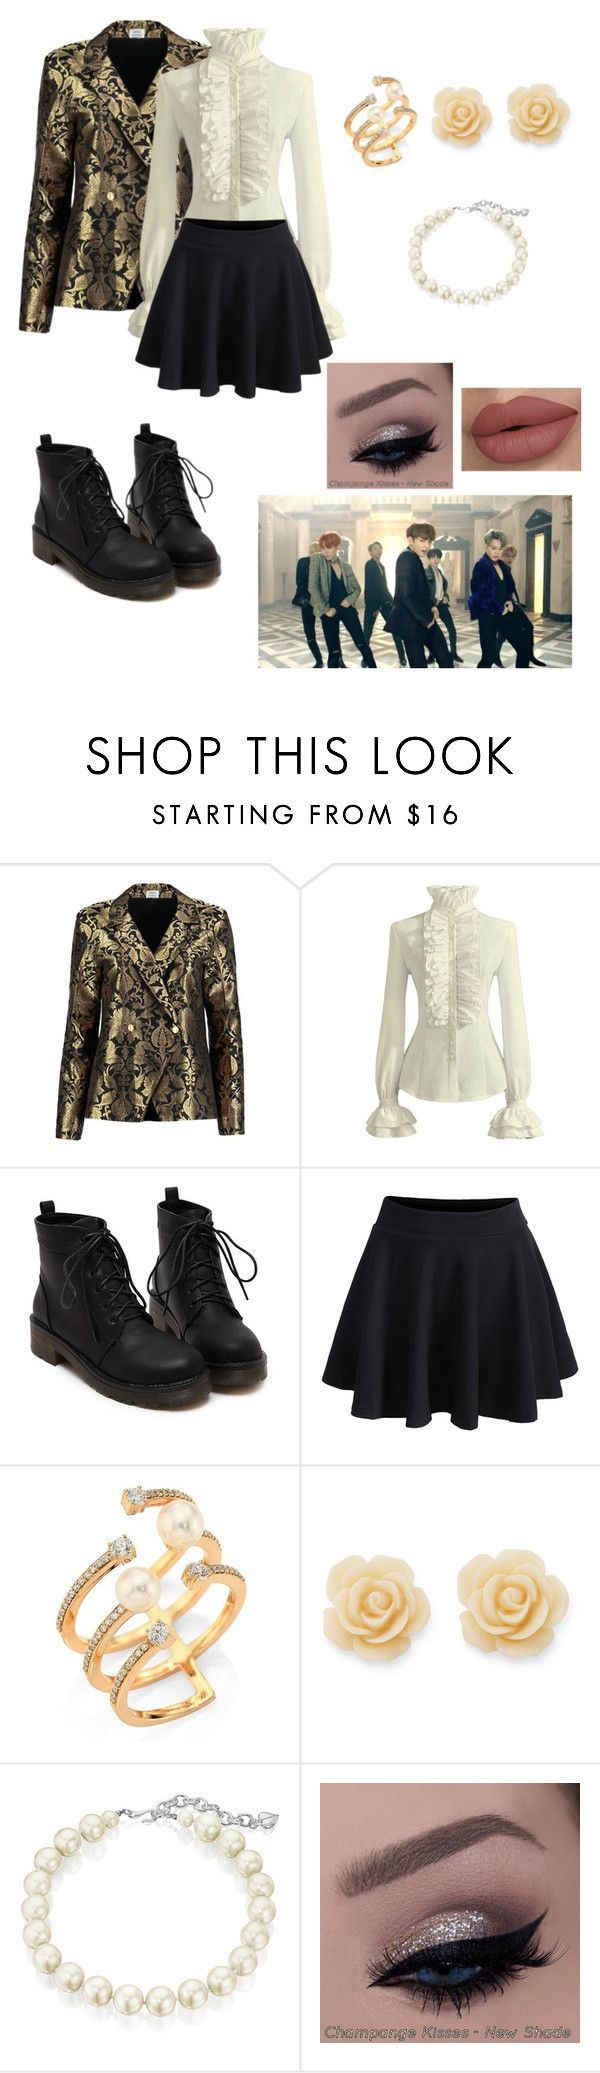 """""""BTS blood sweat and tears inspired outfit!! Request by xxsimplycutexx"""" by bts4ever02 ❤ liked on Polyvore featuring Sania Studio, WithChic, Hueb, Draper James and Carolee"""